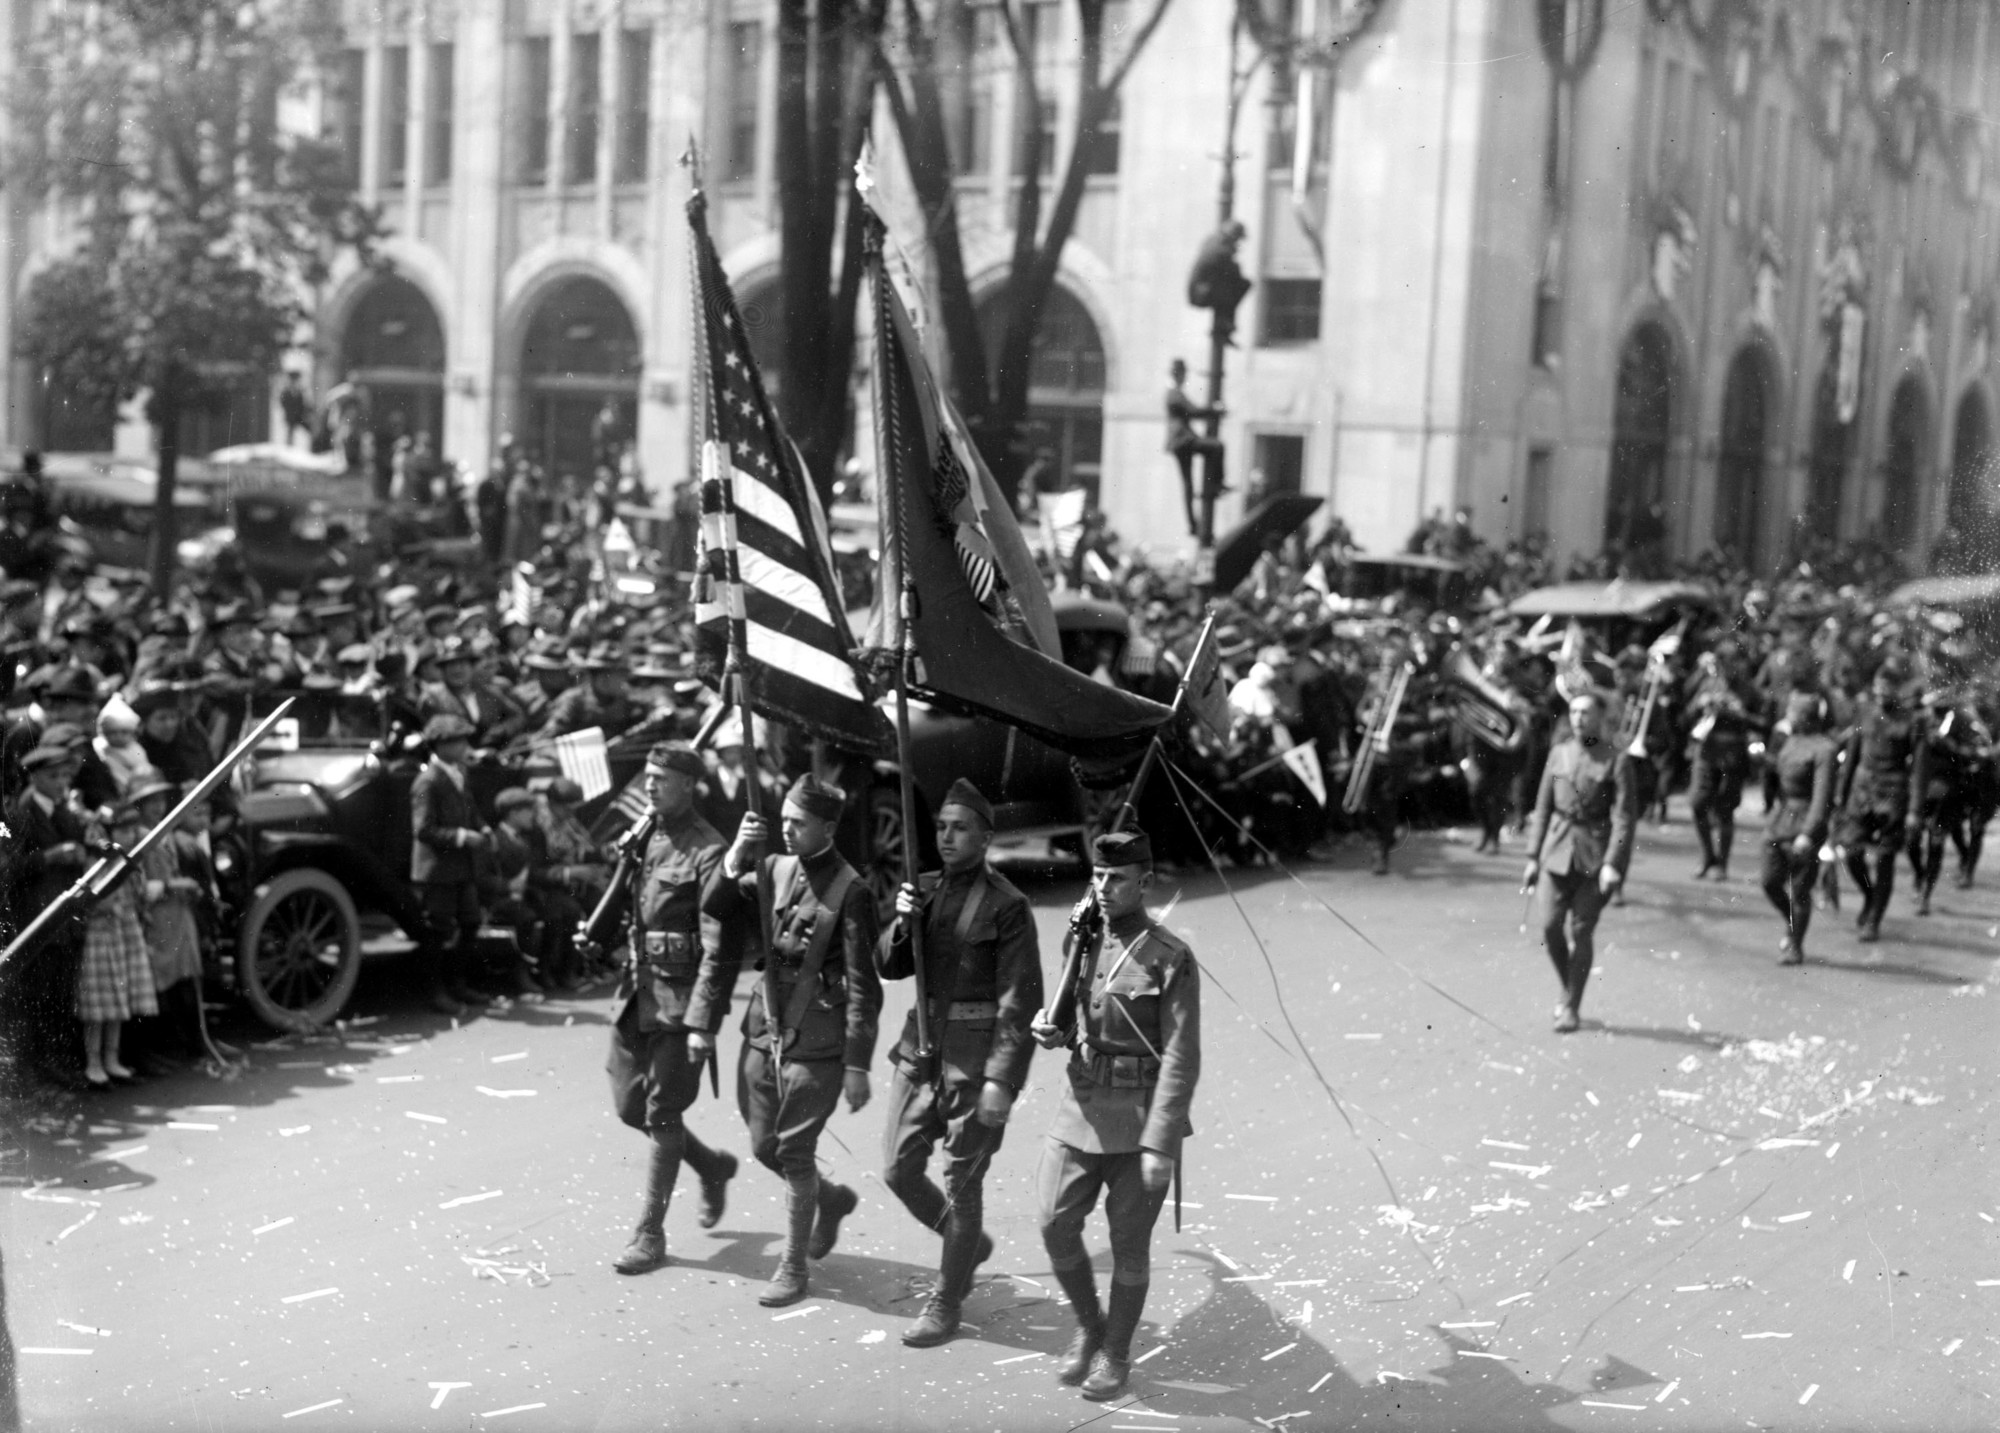 The 32nd Division marching in their return from World War I, marching in the Detroit parade.